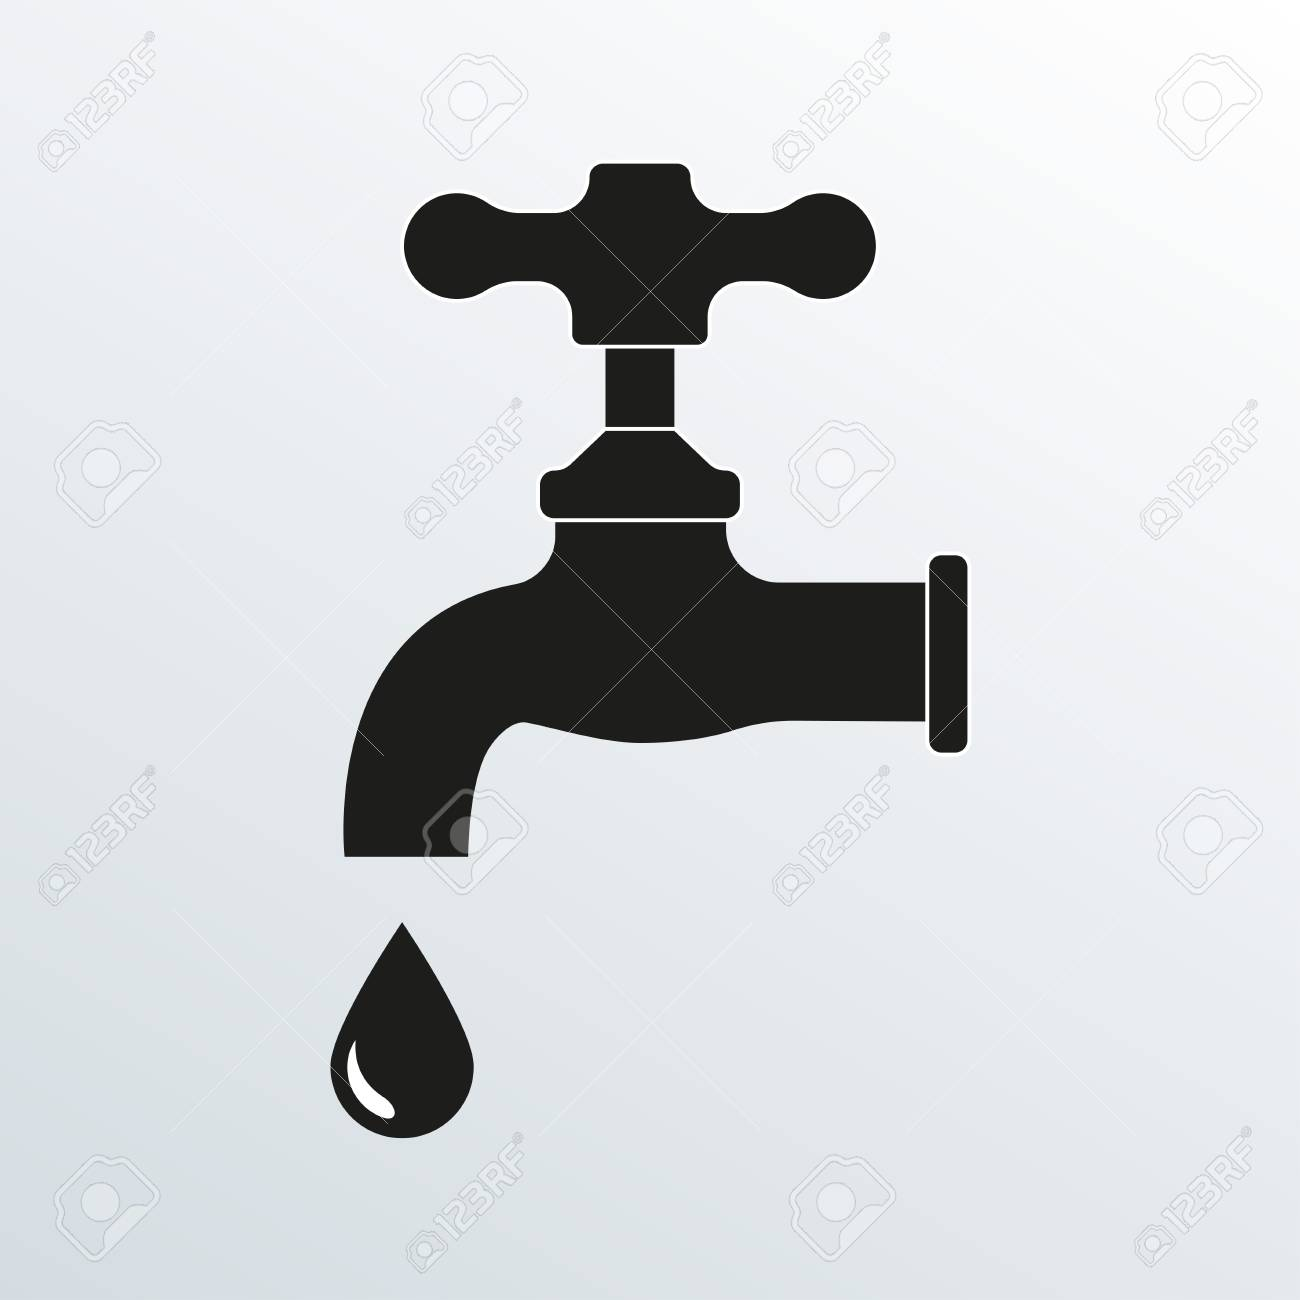 Faucet Icon. Vector Illustration Of Tap Or Faucet. Royalty Free ...